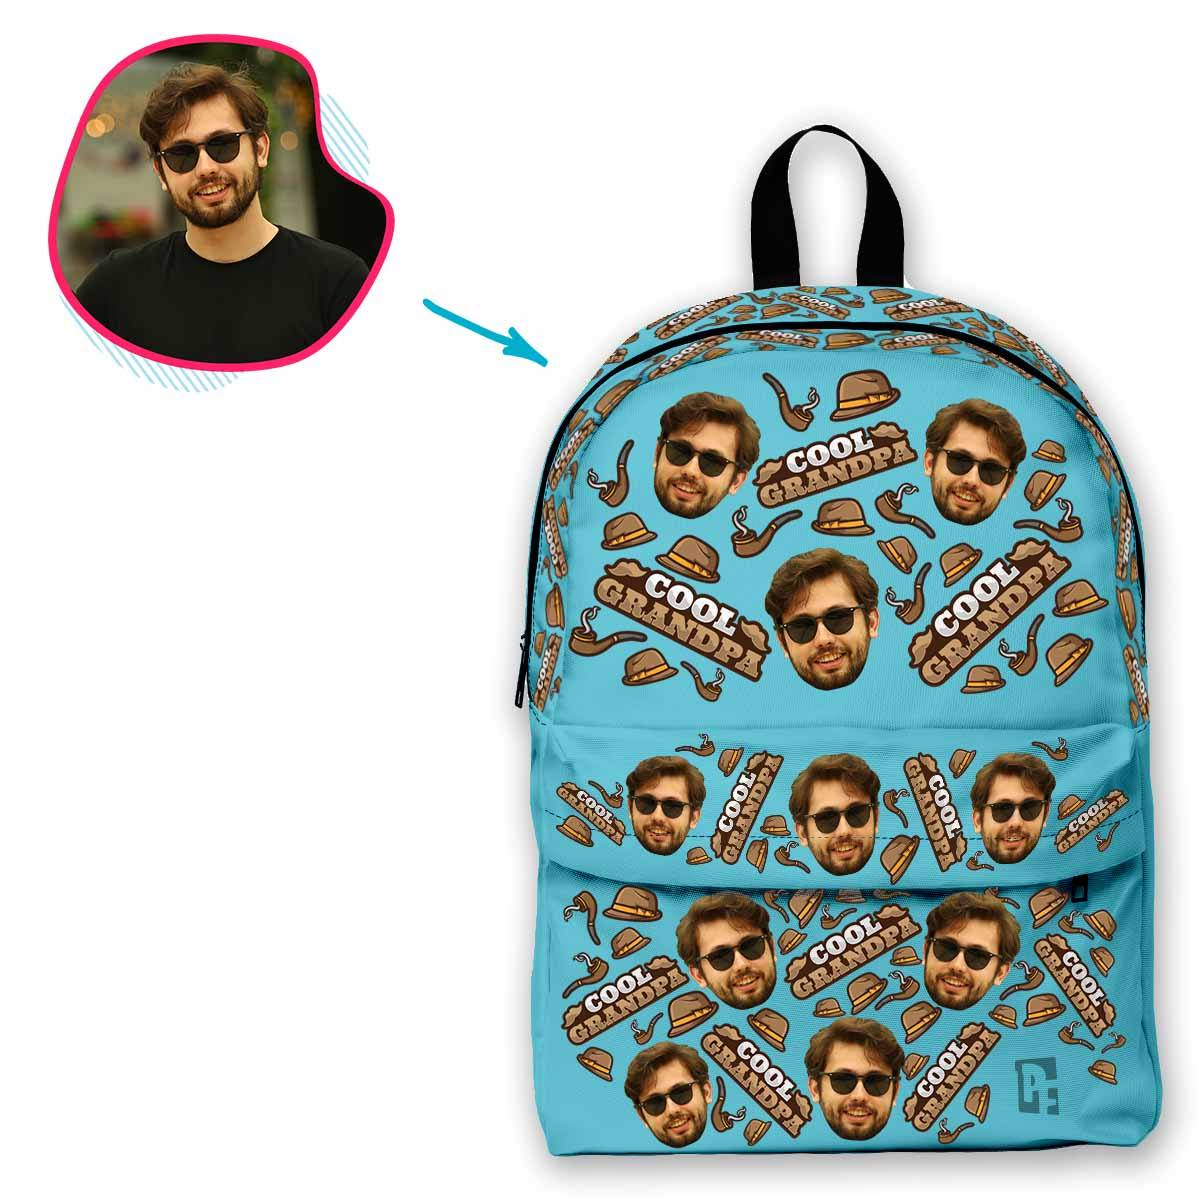 blue Cool Grandfather classic backpack personalized with photo of face printed on it